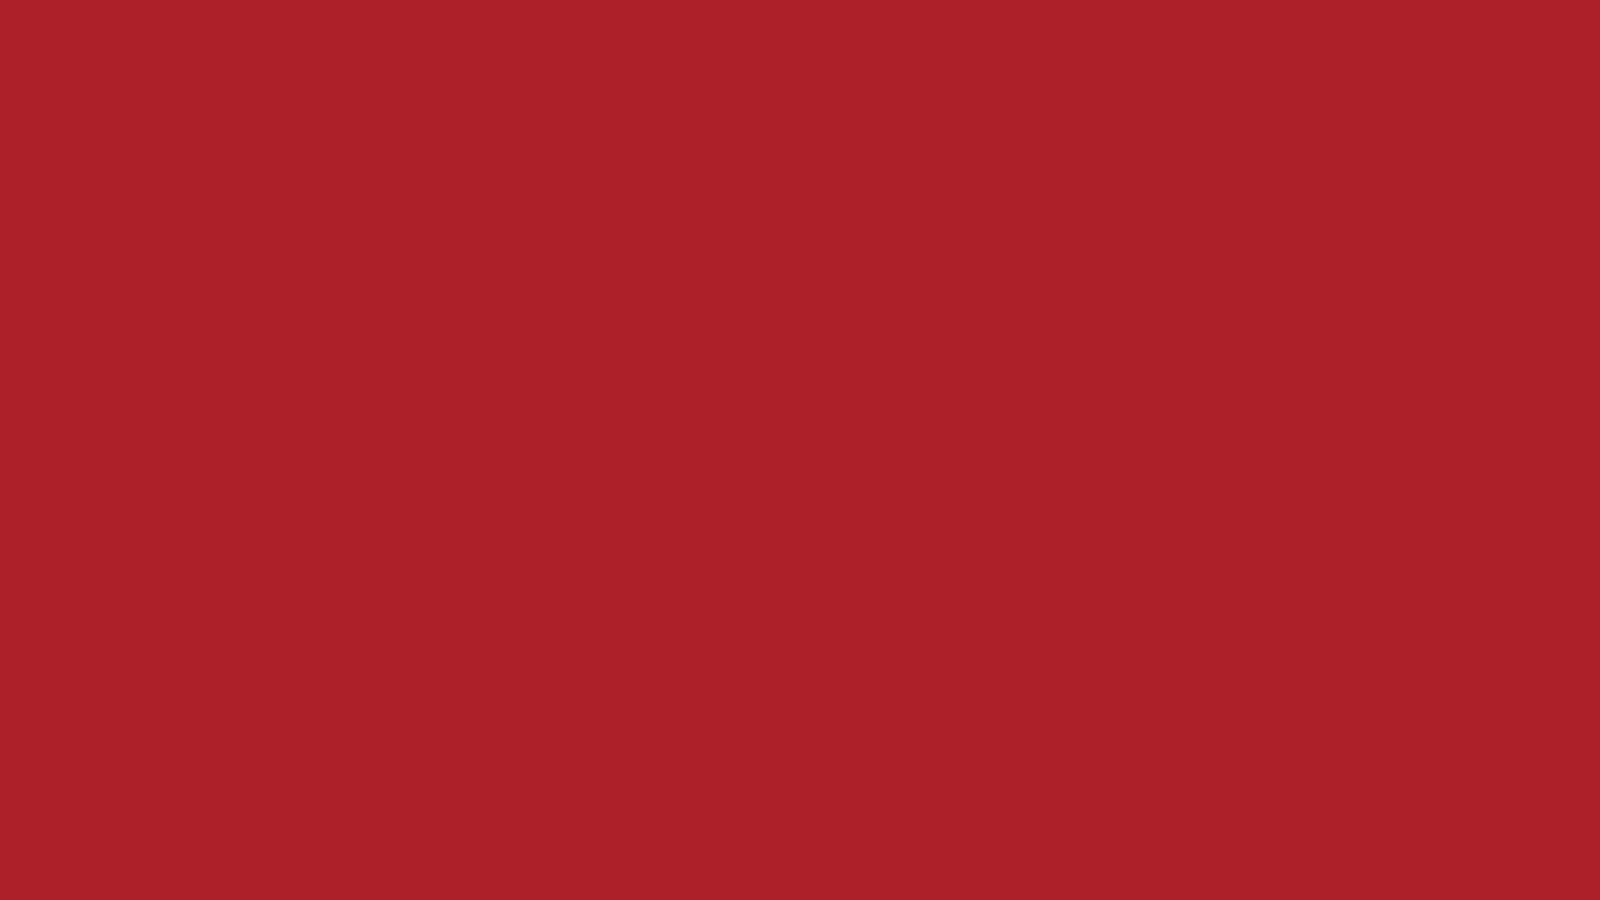 1600x900 Upsdell Red Solid Color Background